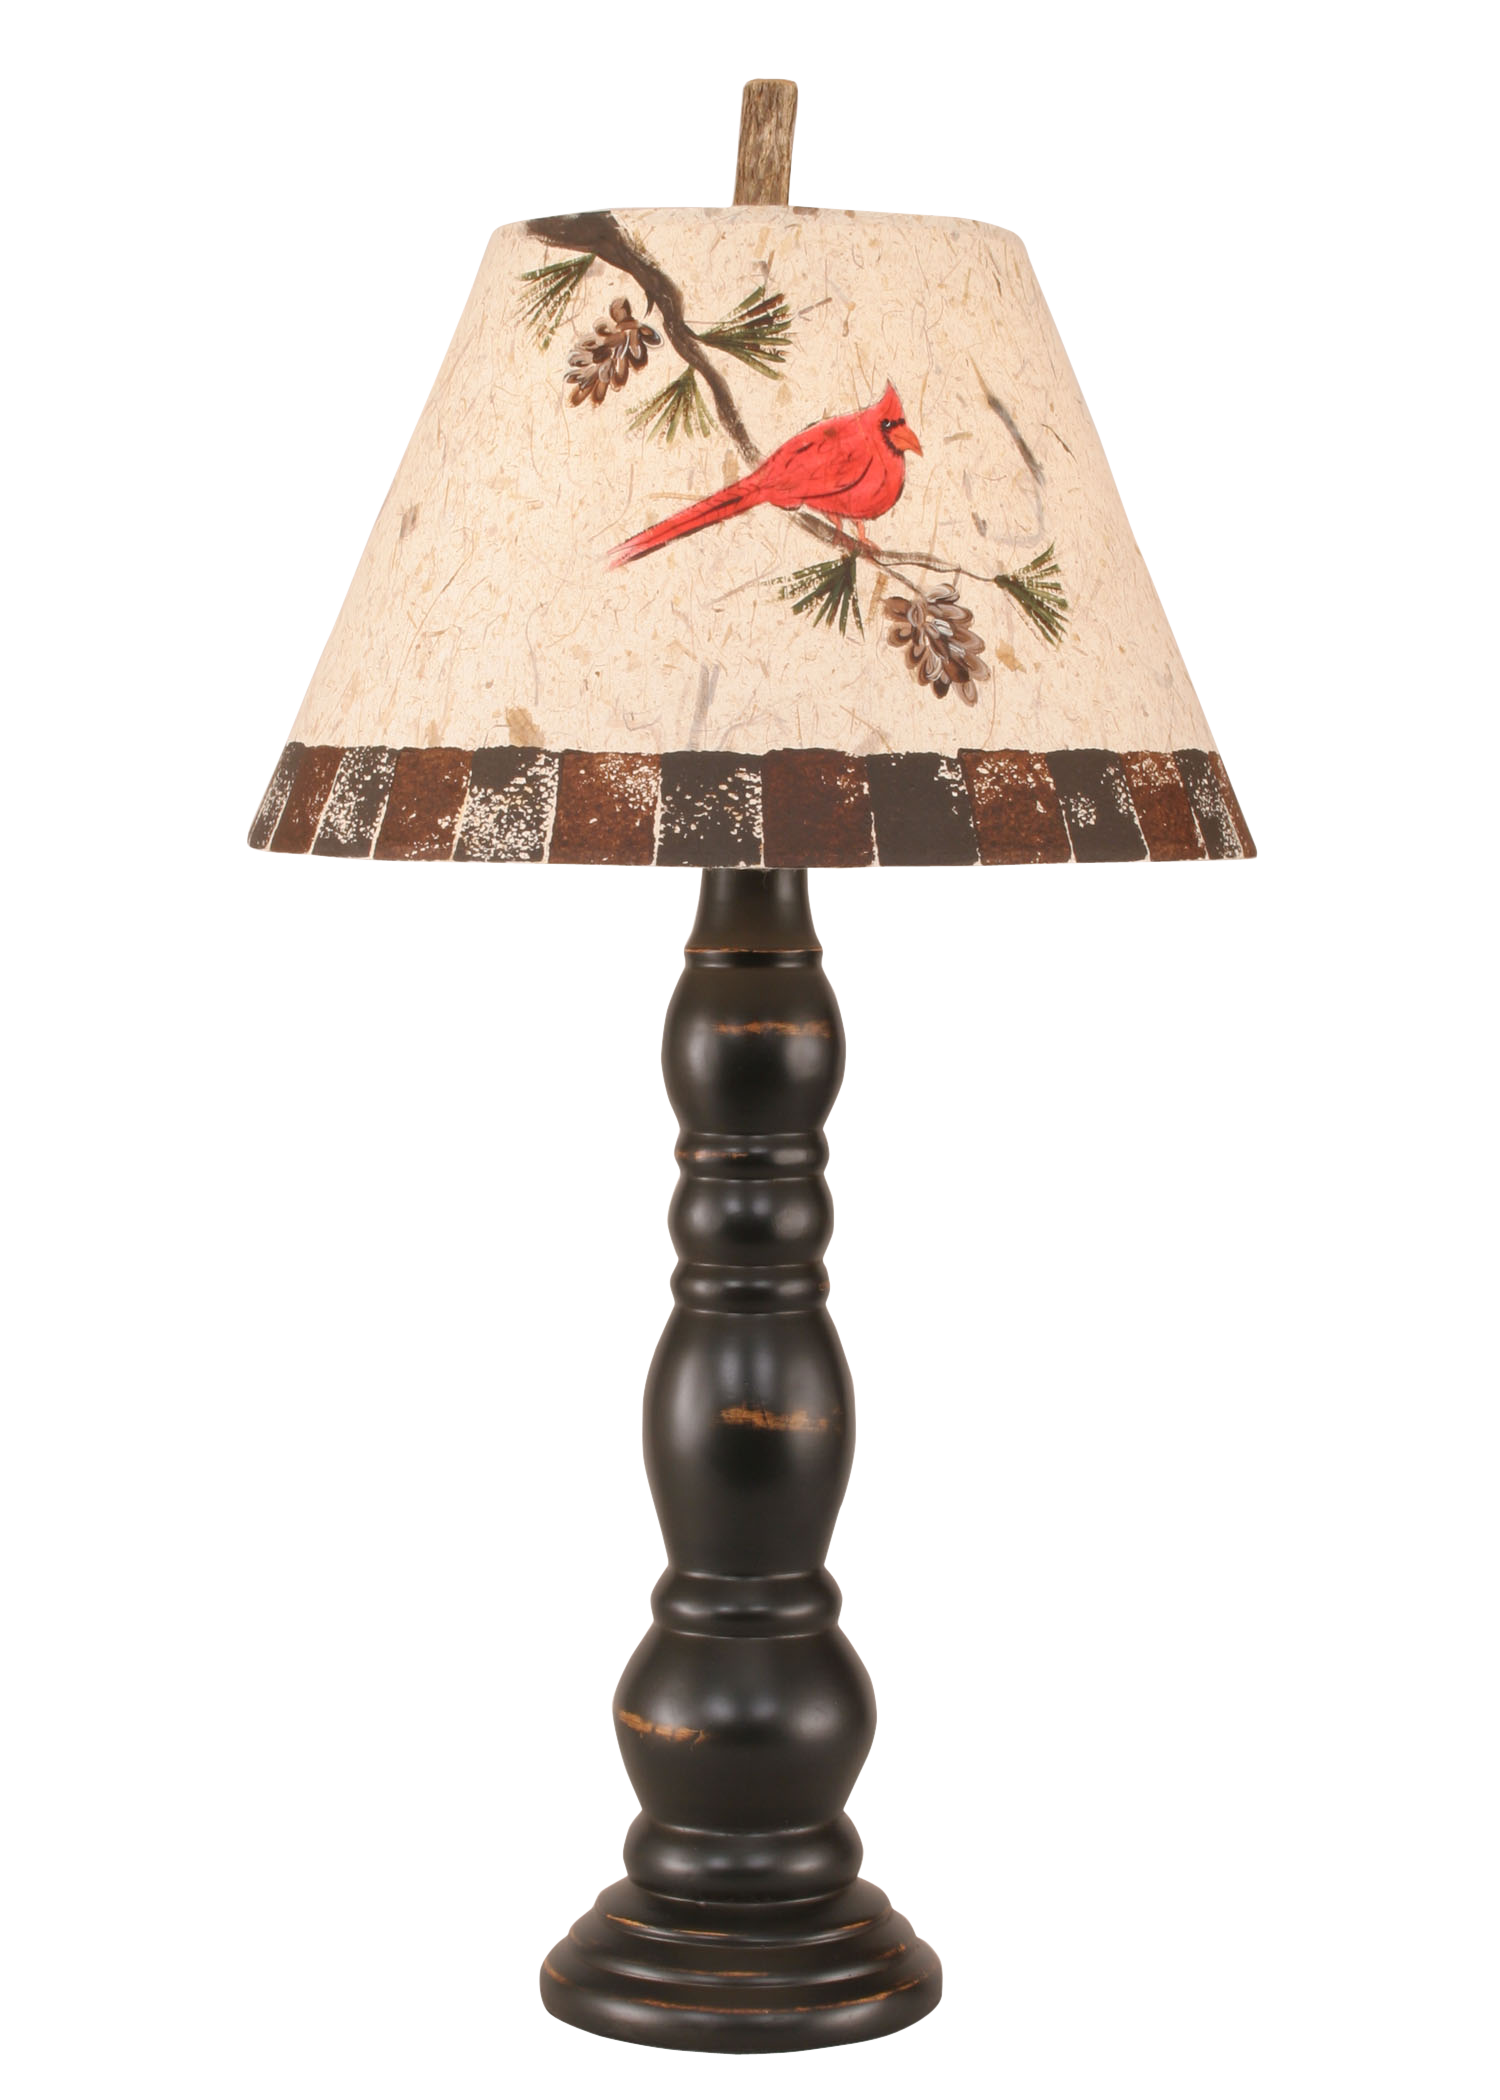 Merveilleux Distressed Black Sectioned Candlestick Table Lamp W/ Cardinal Shade   Coast  Lamp Shop